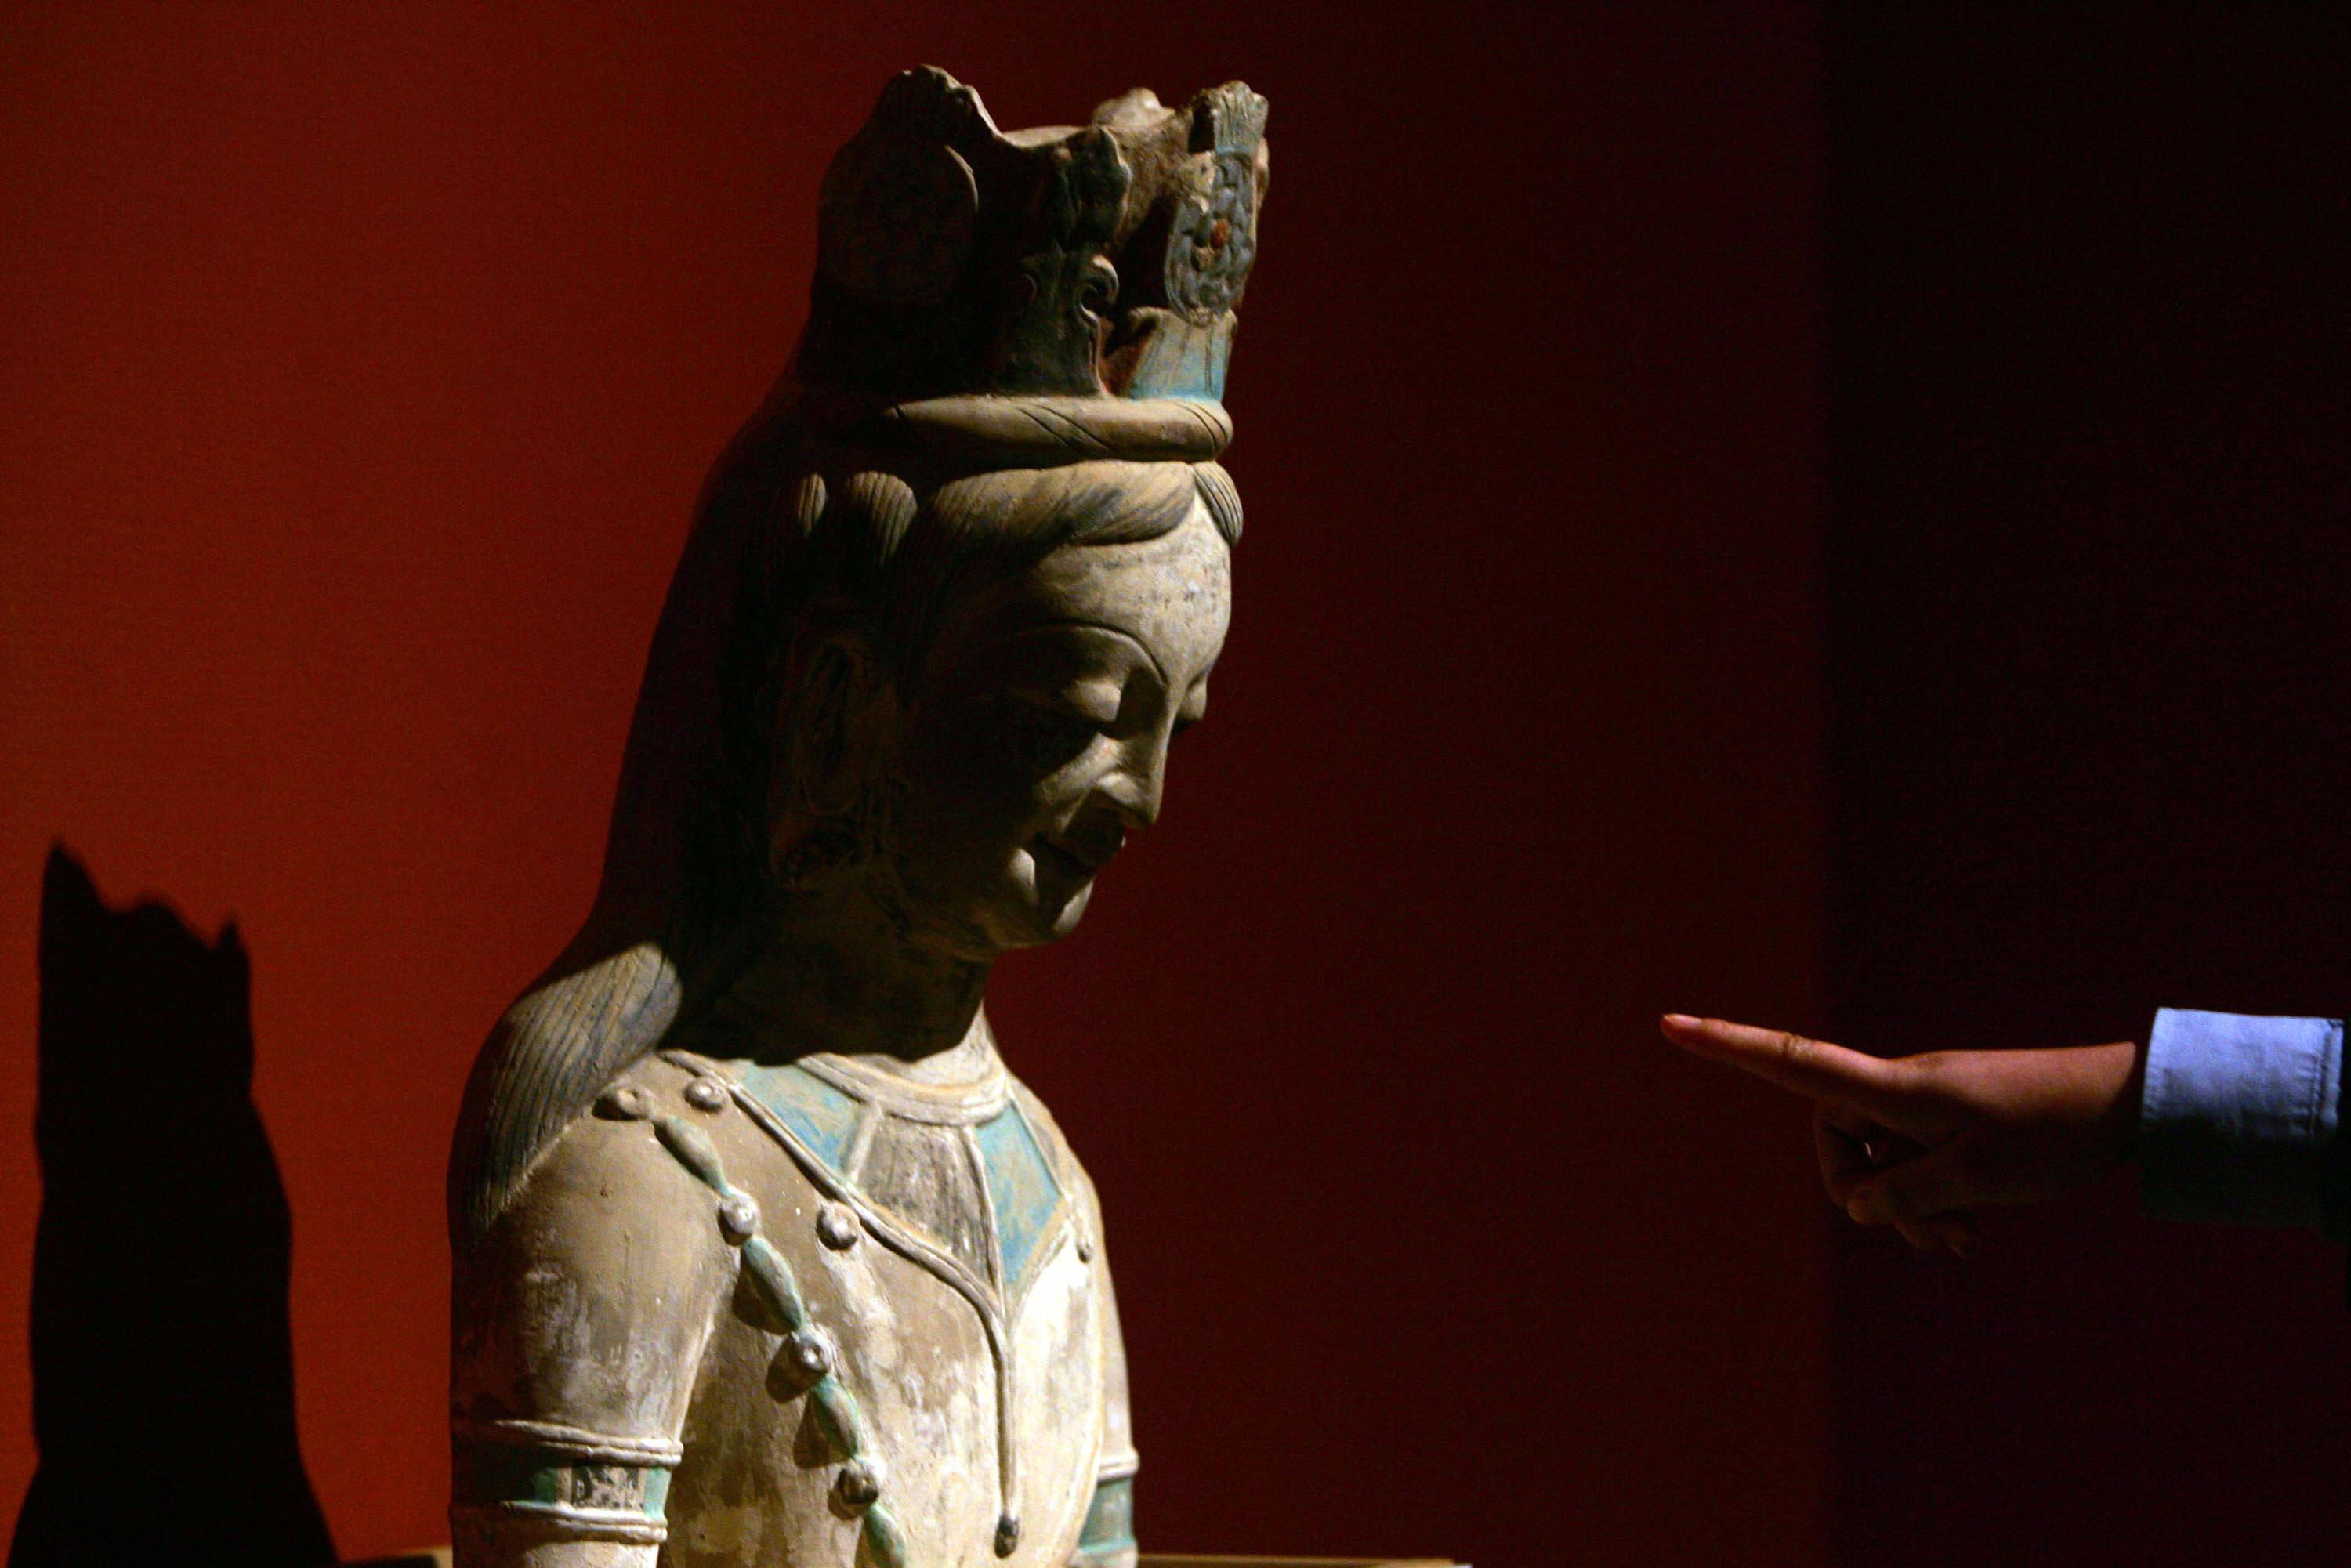 Hidden treasure: ancient buddhist statue contains hoard of artifacts